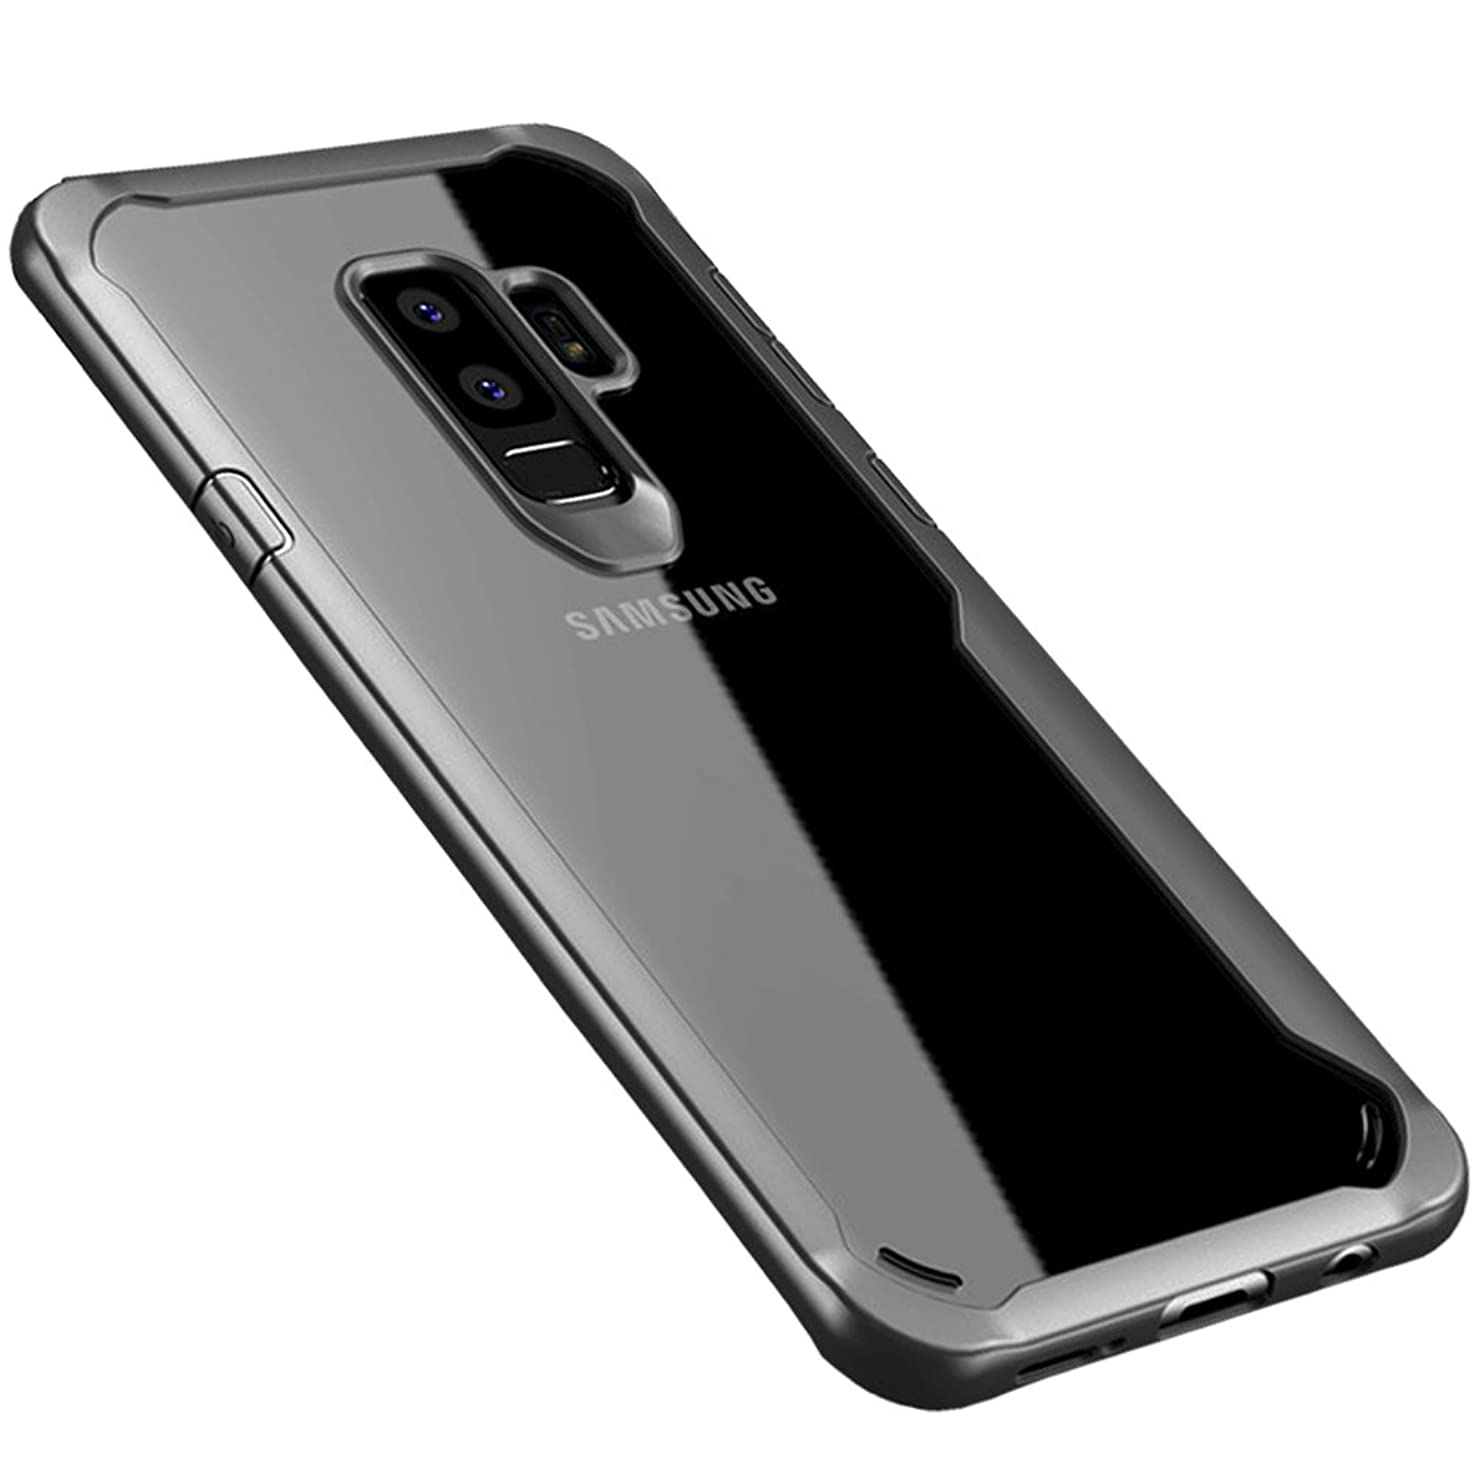 HONTECH Galaxy S9 Case, Ultra Thin Clear PC Back Cover TPU Frame Bumper Shockproof Shell for GalaxyS9 (Gray)